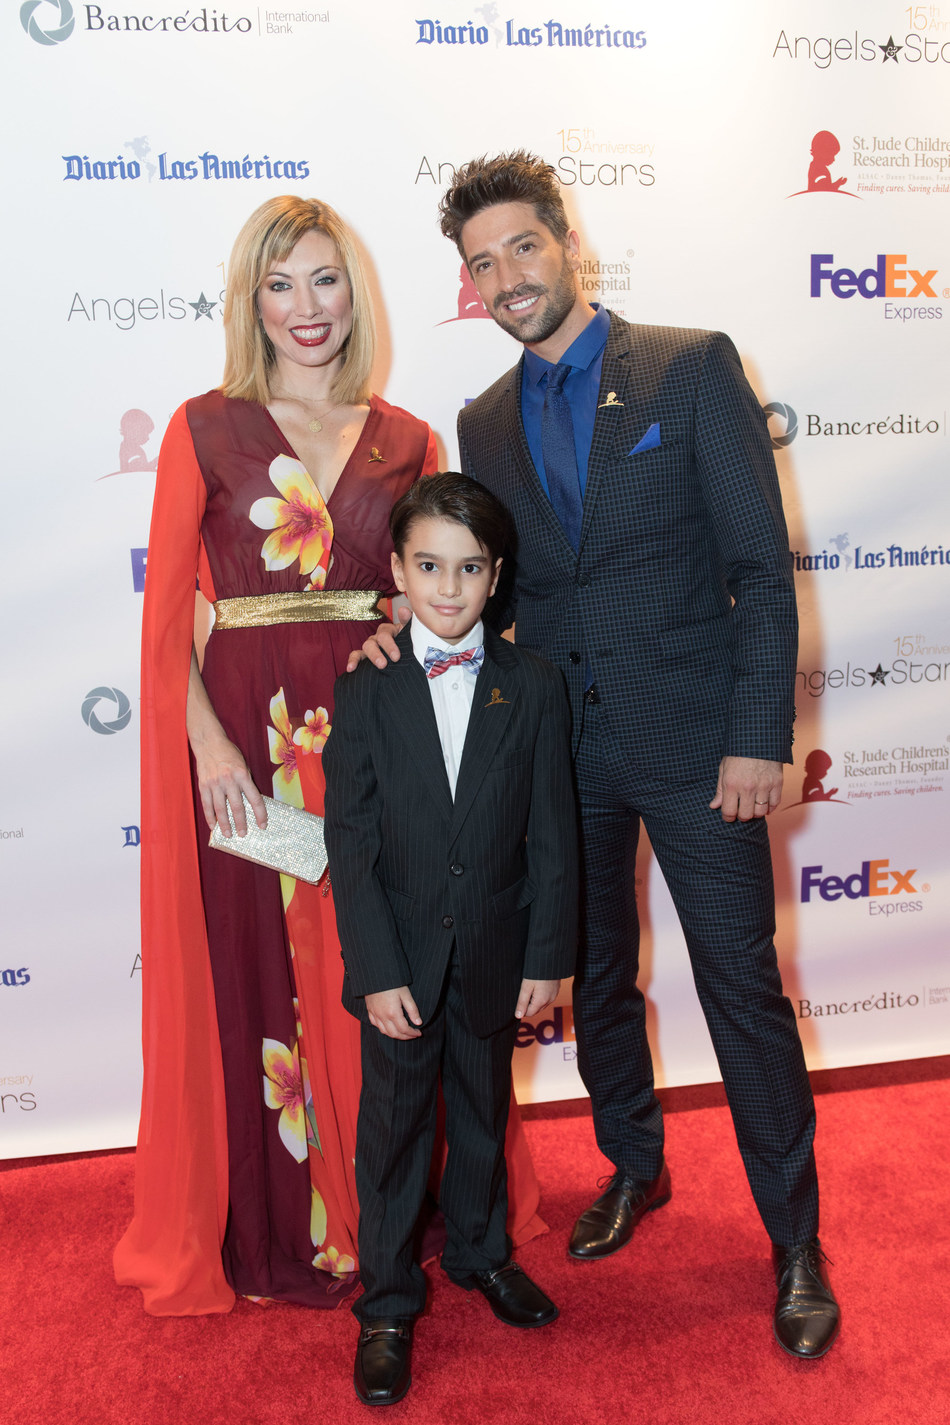 David Chocarro & Carolina Laursen with St. Jude patient Hender on the red carpet of the 15th annual FedEx St. Jude Angels & Stars Miami Gala on Saturday May 20th